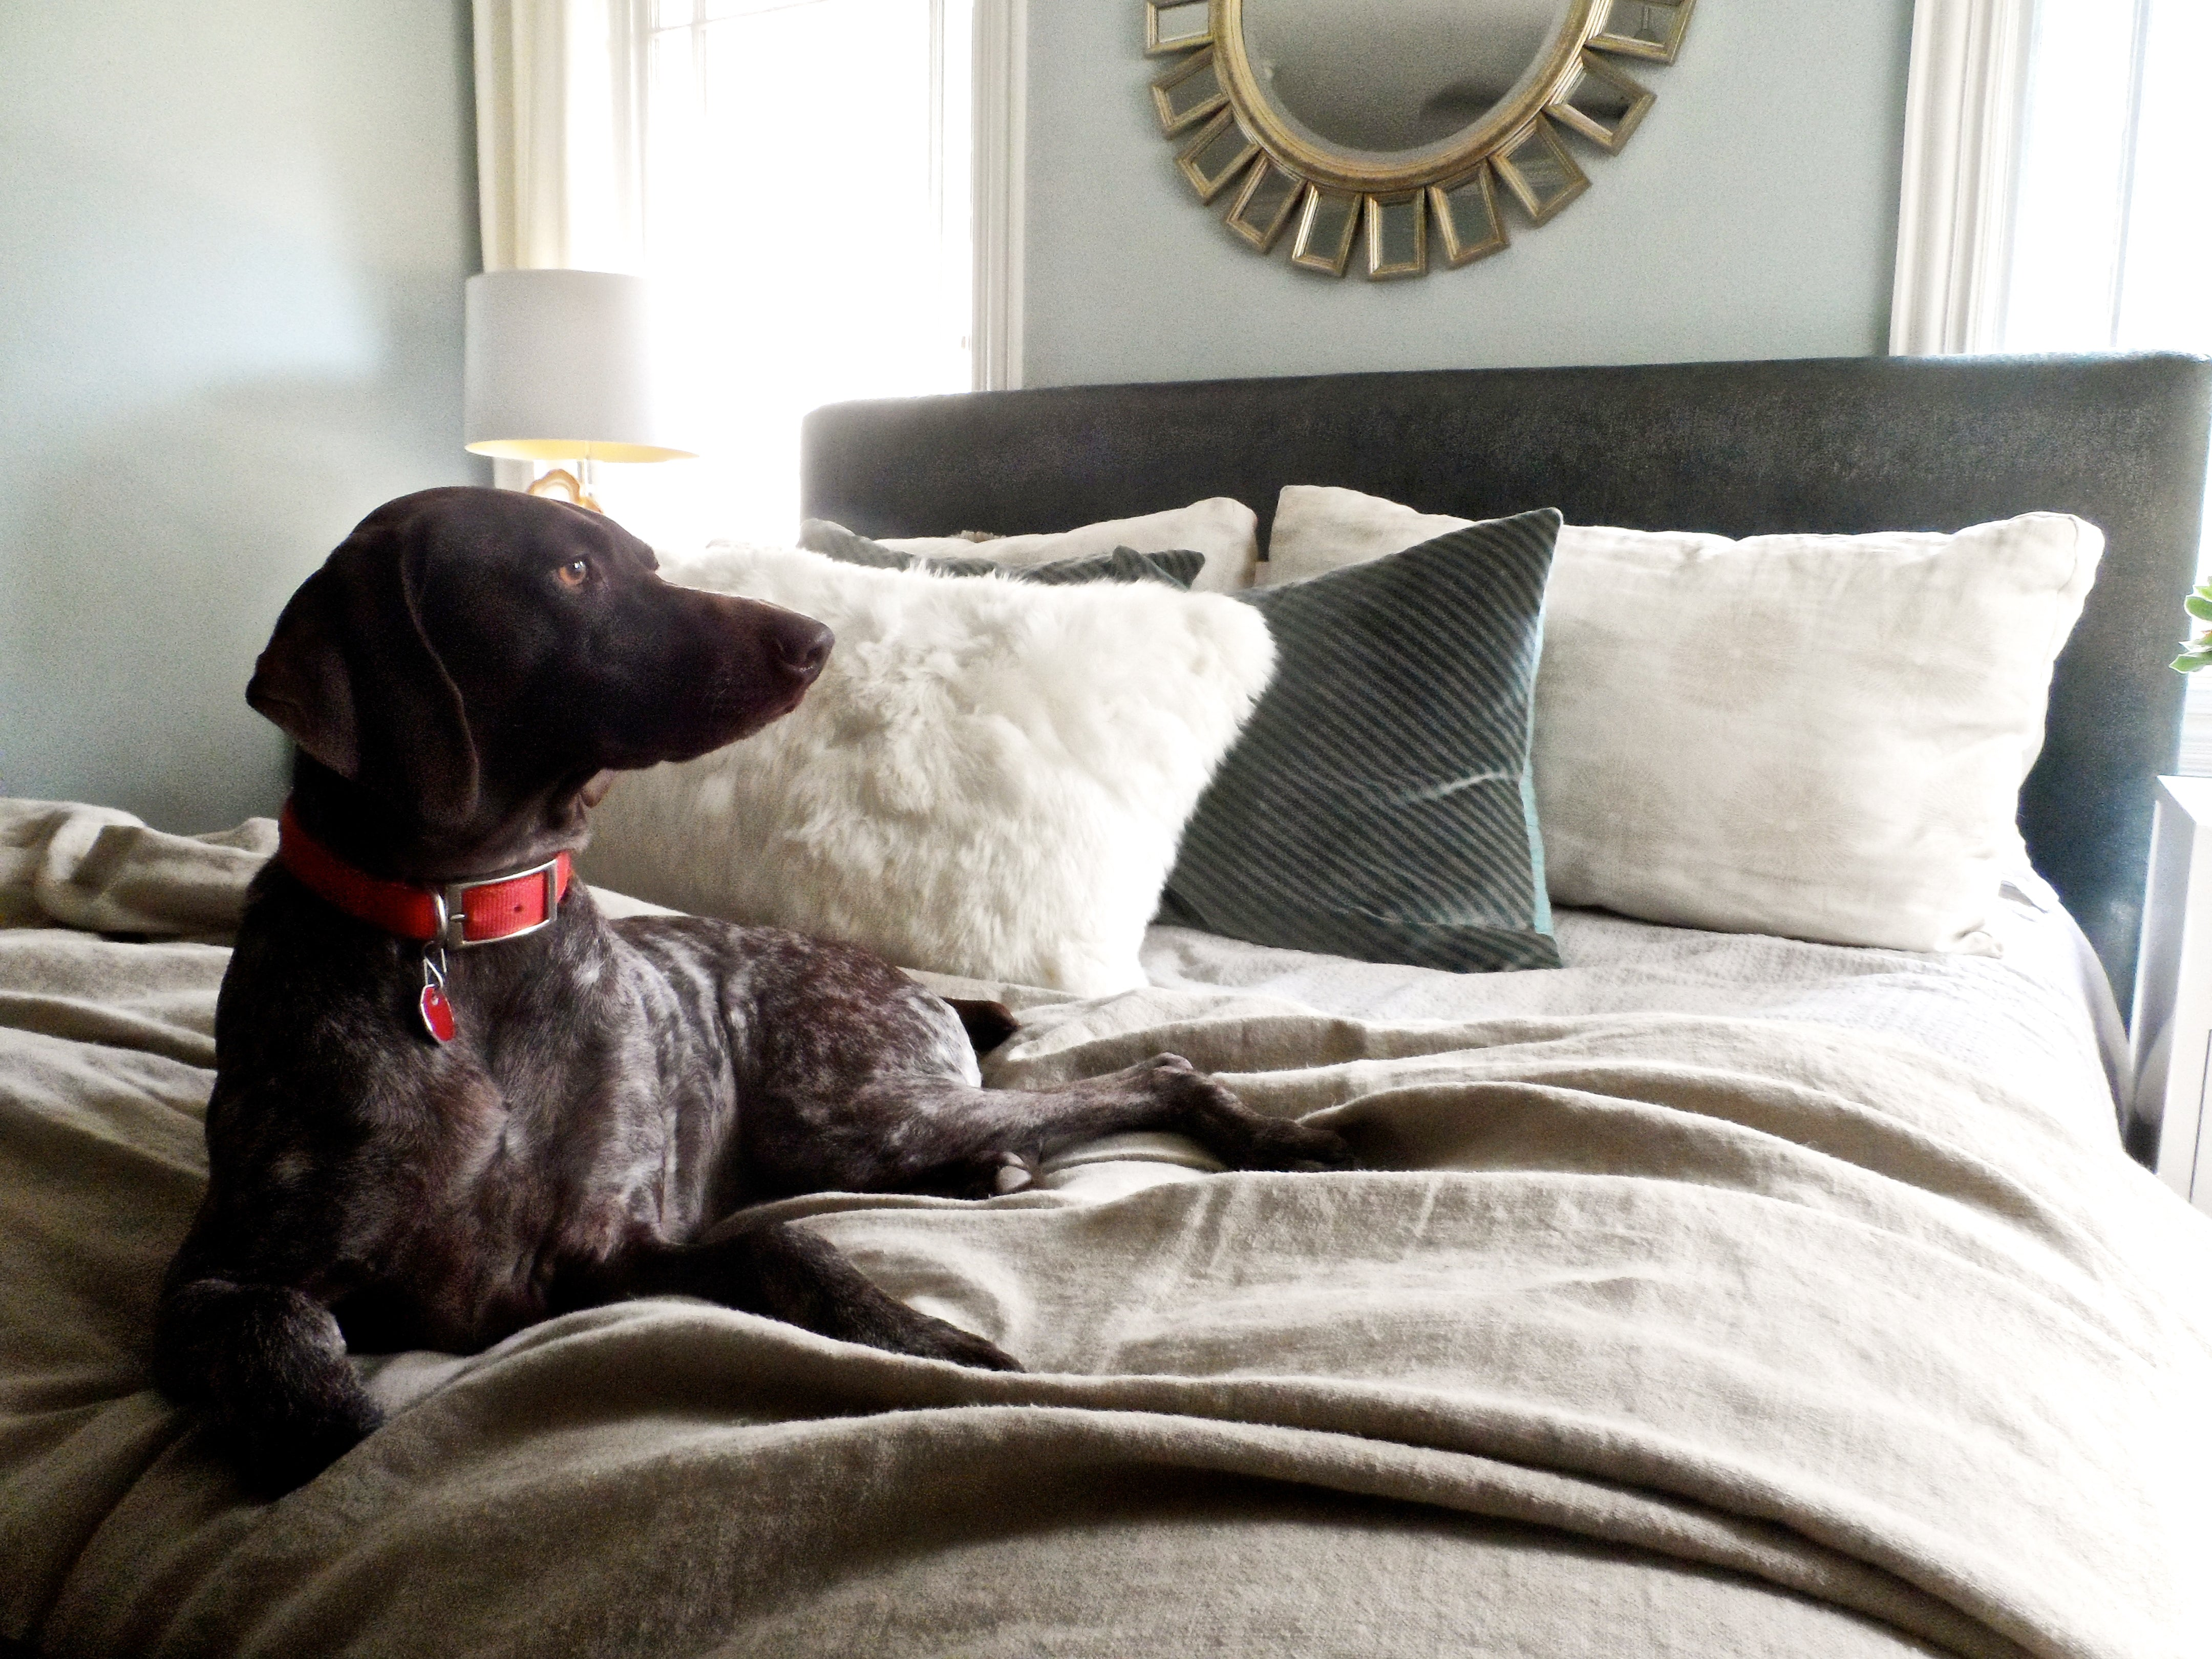 A pointer with a red collar lies on the bed